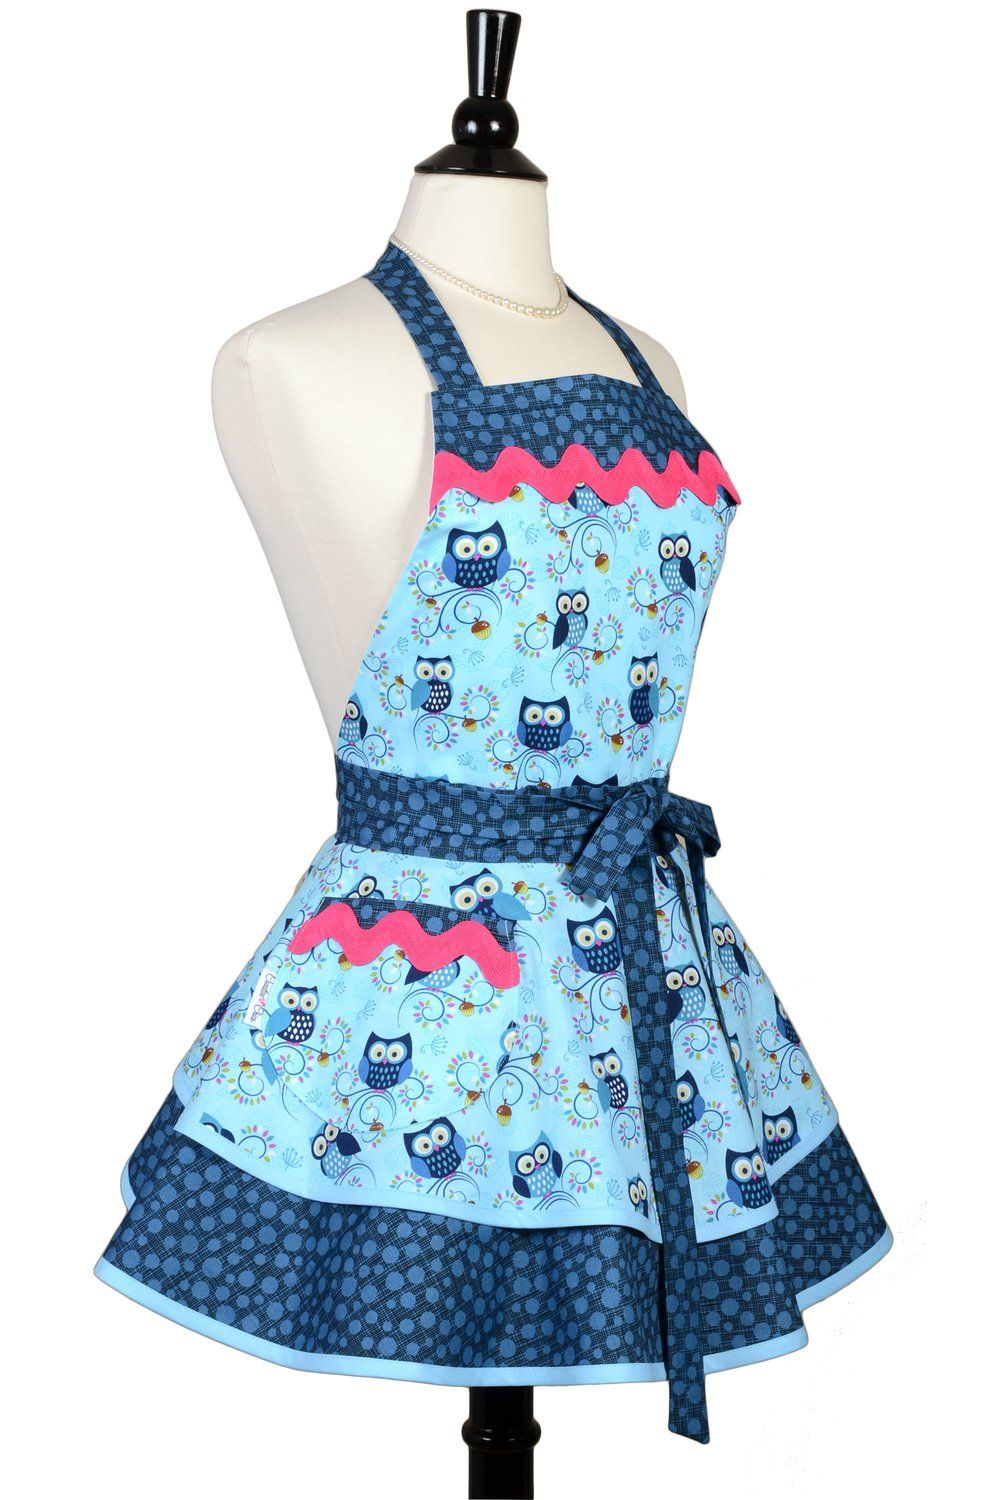 cute kitchen aprons showrooms womens ruffled retro happy hooters owls sexy pinup apron creative chics